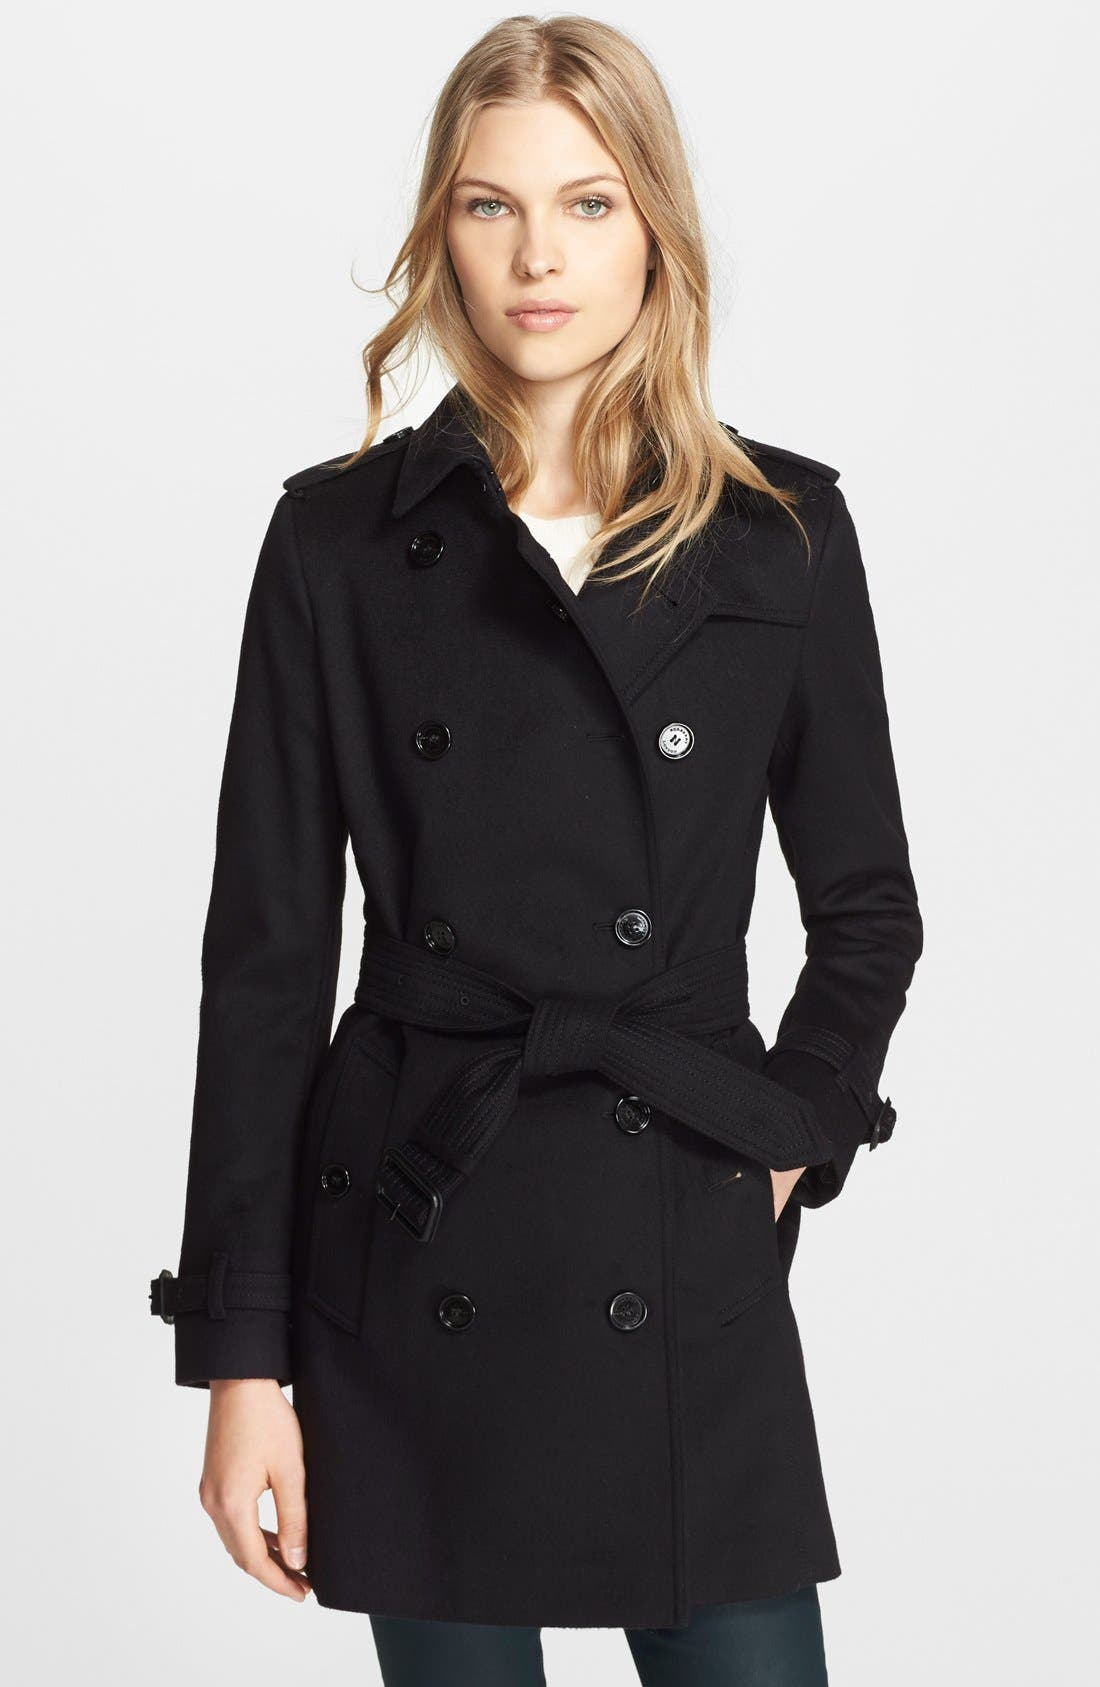 Alternate Image 1 Selected - Burberry London 'Kensington' Double Breasted Trench Coat